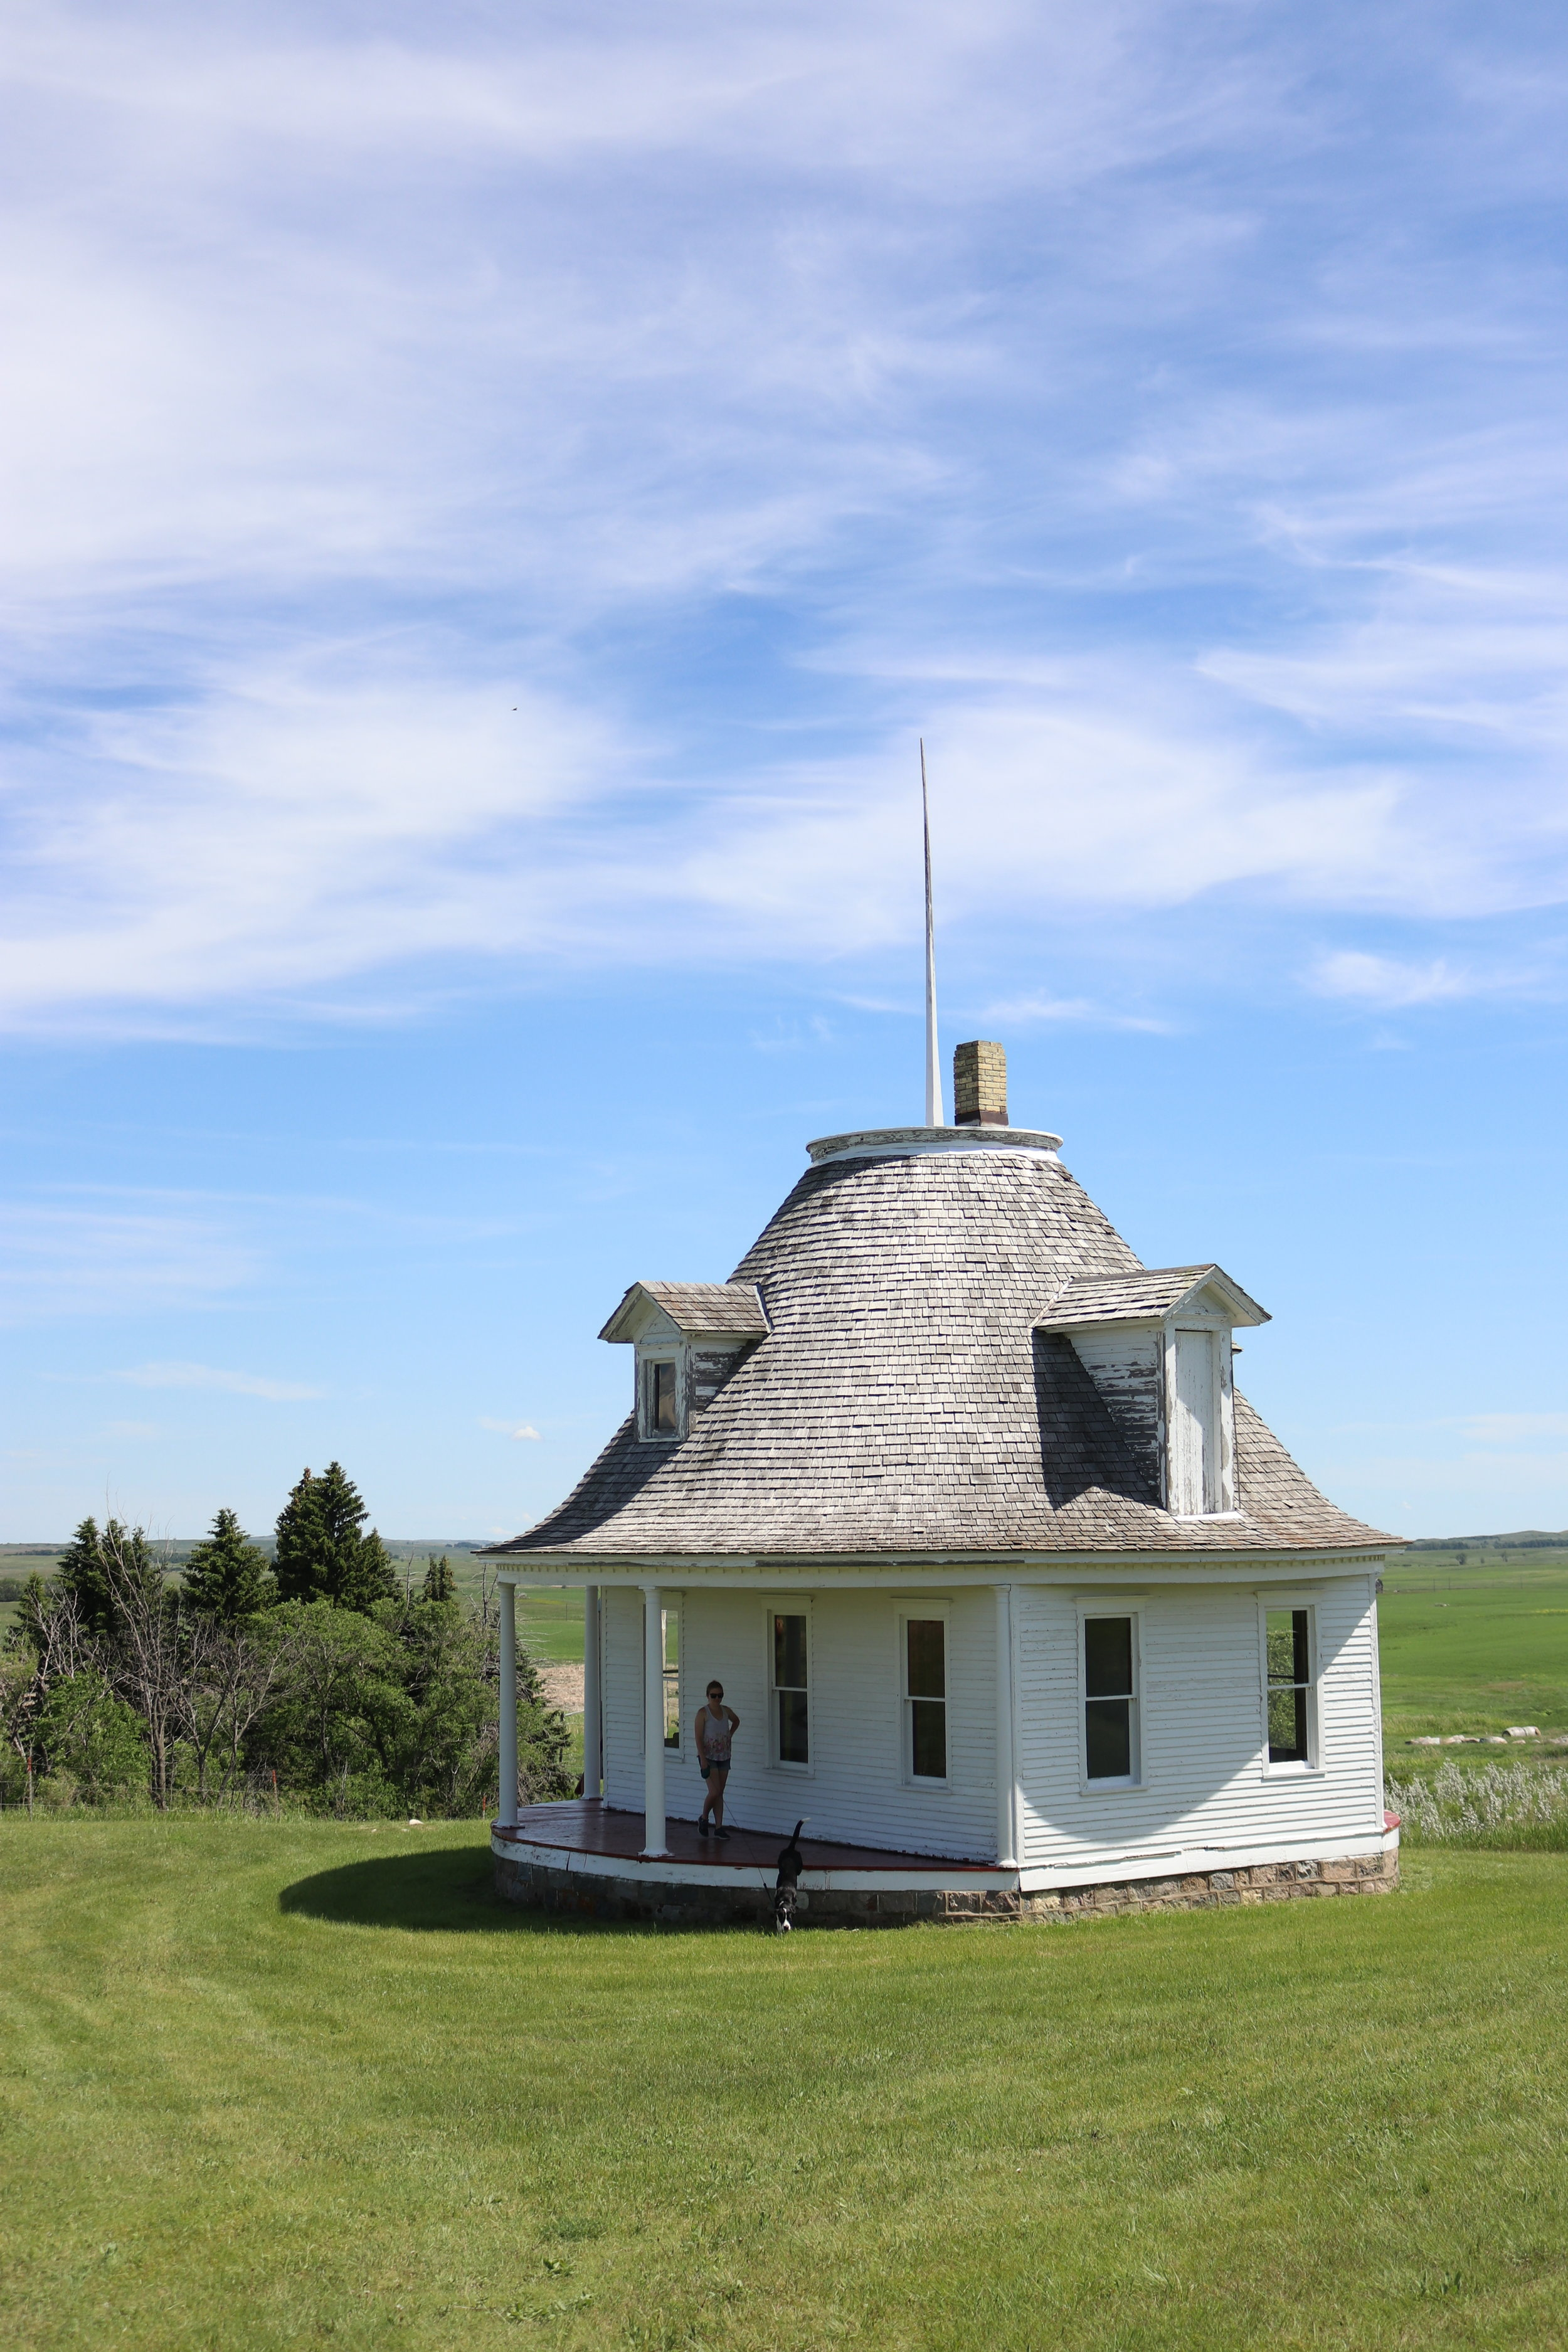 The Hurd Round House, Middle of Nowhere, ND